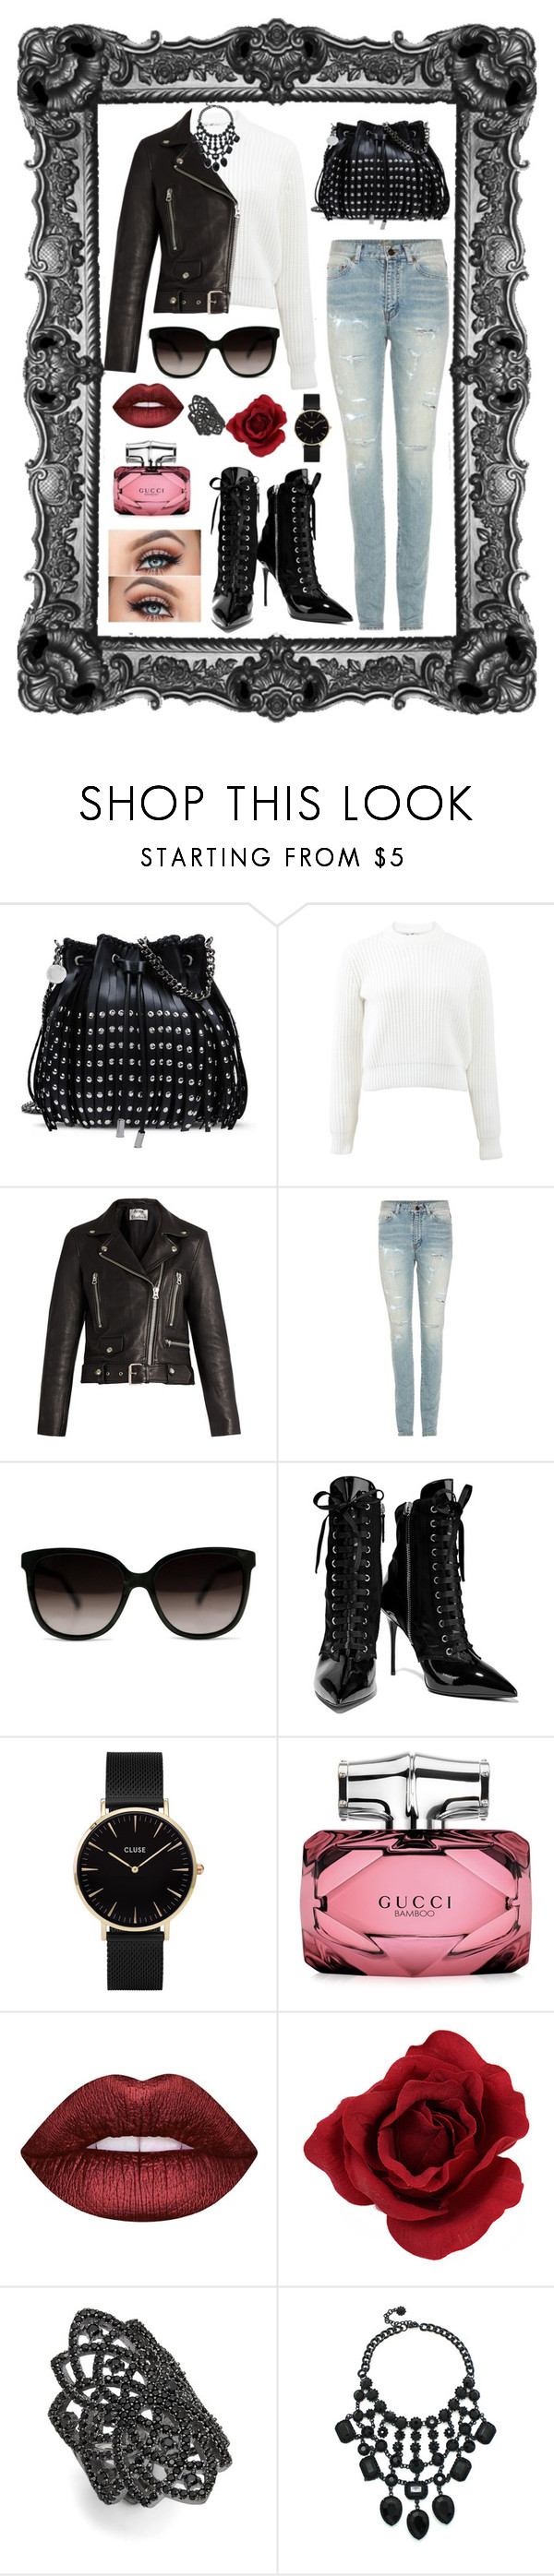 """""""Untitled #480"""" by rockinstyles ❤ liked on Polyvore featuring STELLA McCARTNEY, T By Alexander Wang, Acne Studios, Yves Saint Laurent, Gucci, Giuseppe Zanotti, CLUSE, Lime Crime, Noir and Eye Candy"""